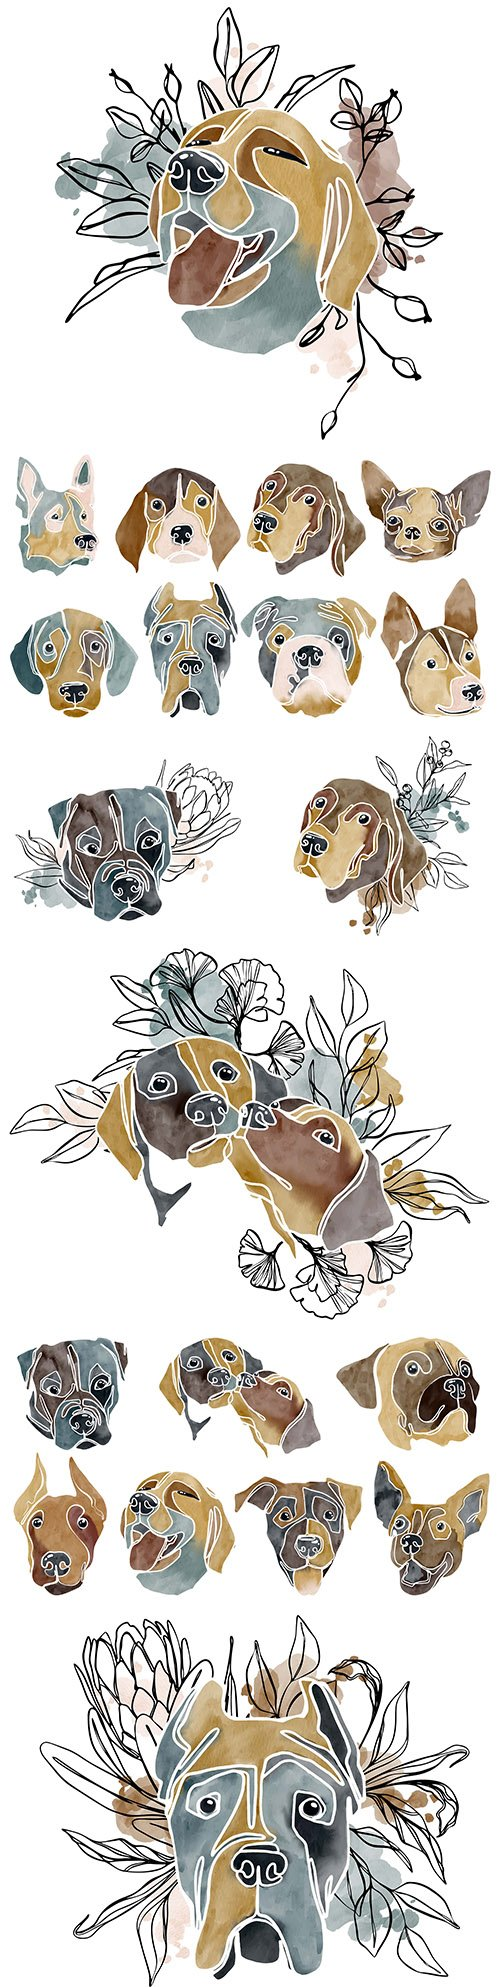 Dogs of different breeds abstract illustrations